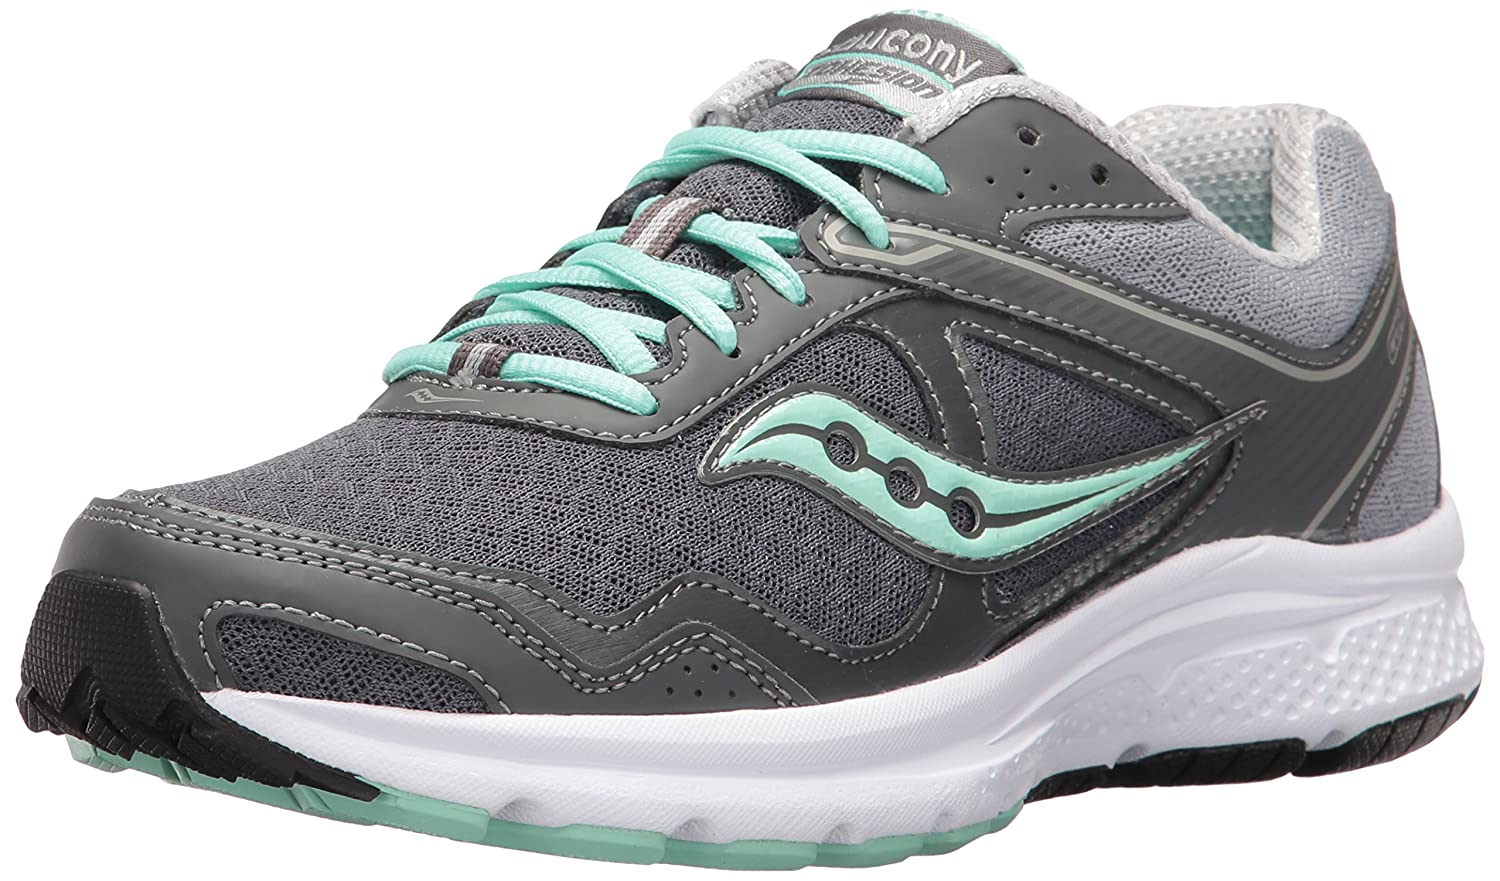 Saucony Women's Cohesion 10 Running Shoe B01HPGM7GQ 8.5 B(M) US|Grey/Mint